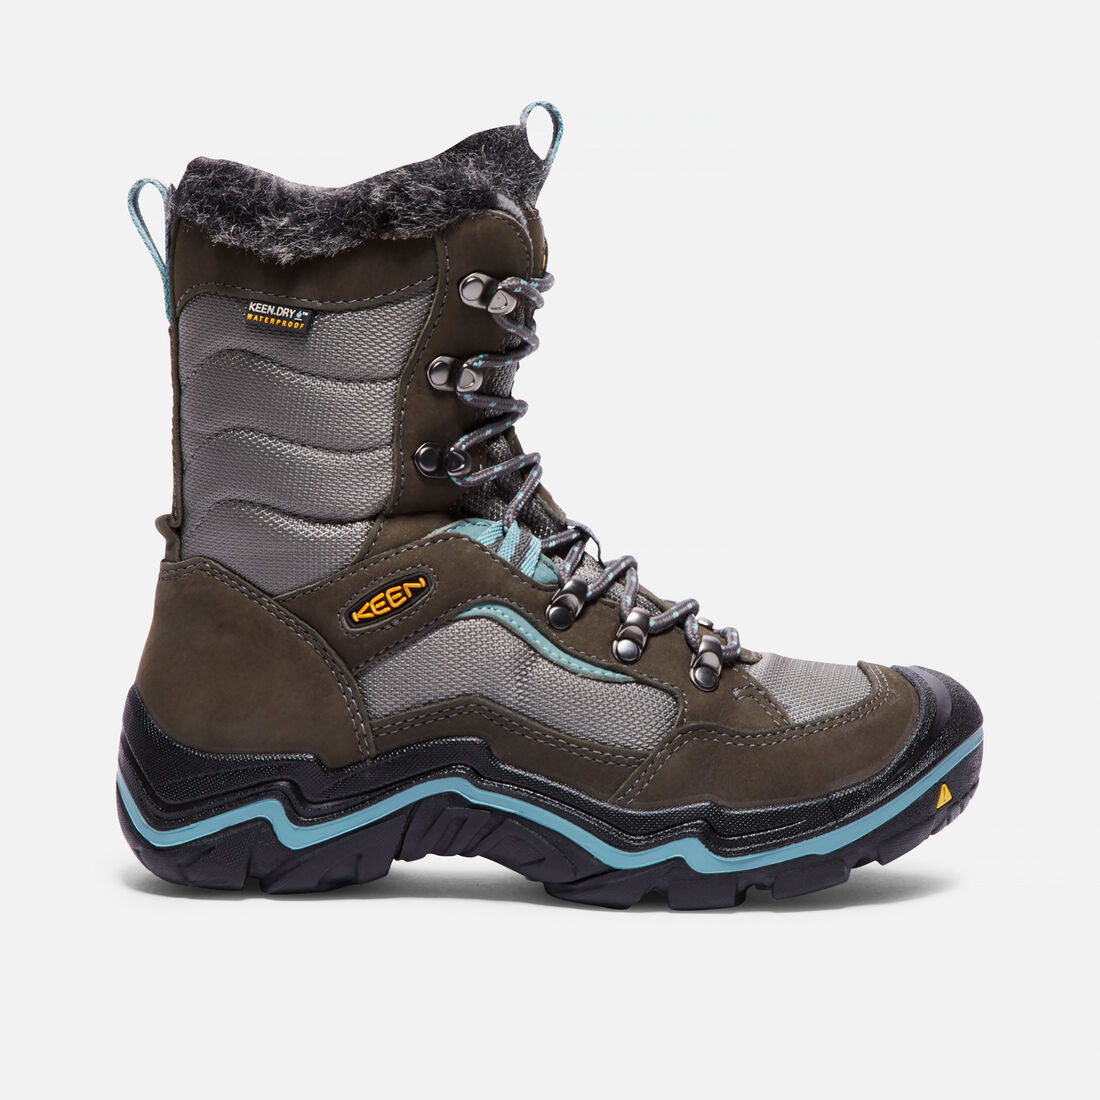 ef57b62d564 Women's Durand Polar Waterproof Boot in Magnet Mineral Blue - large view.